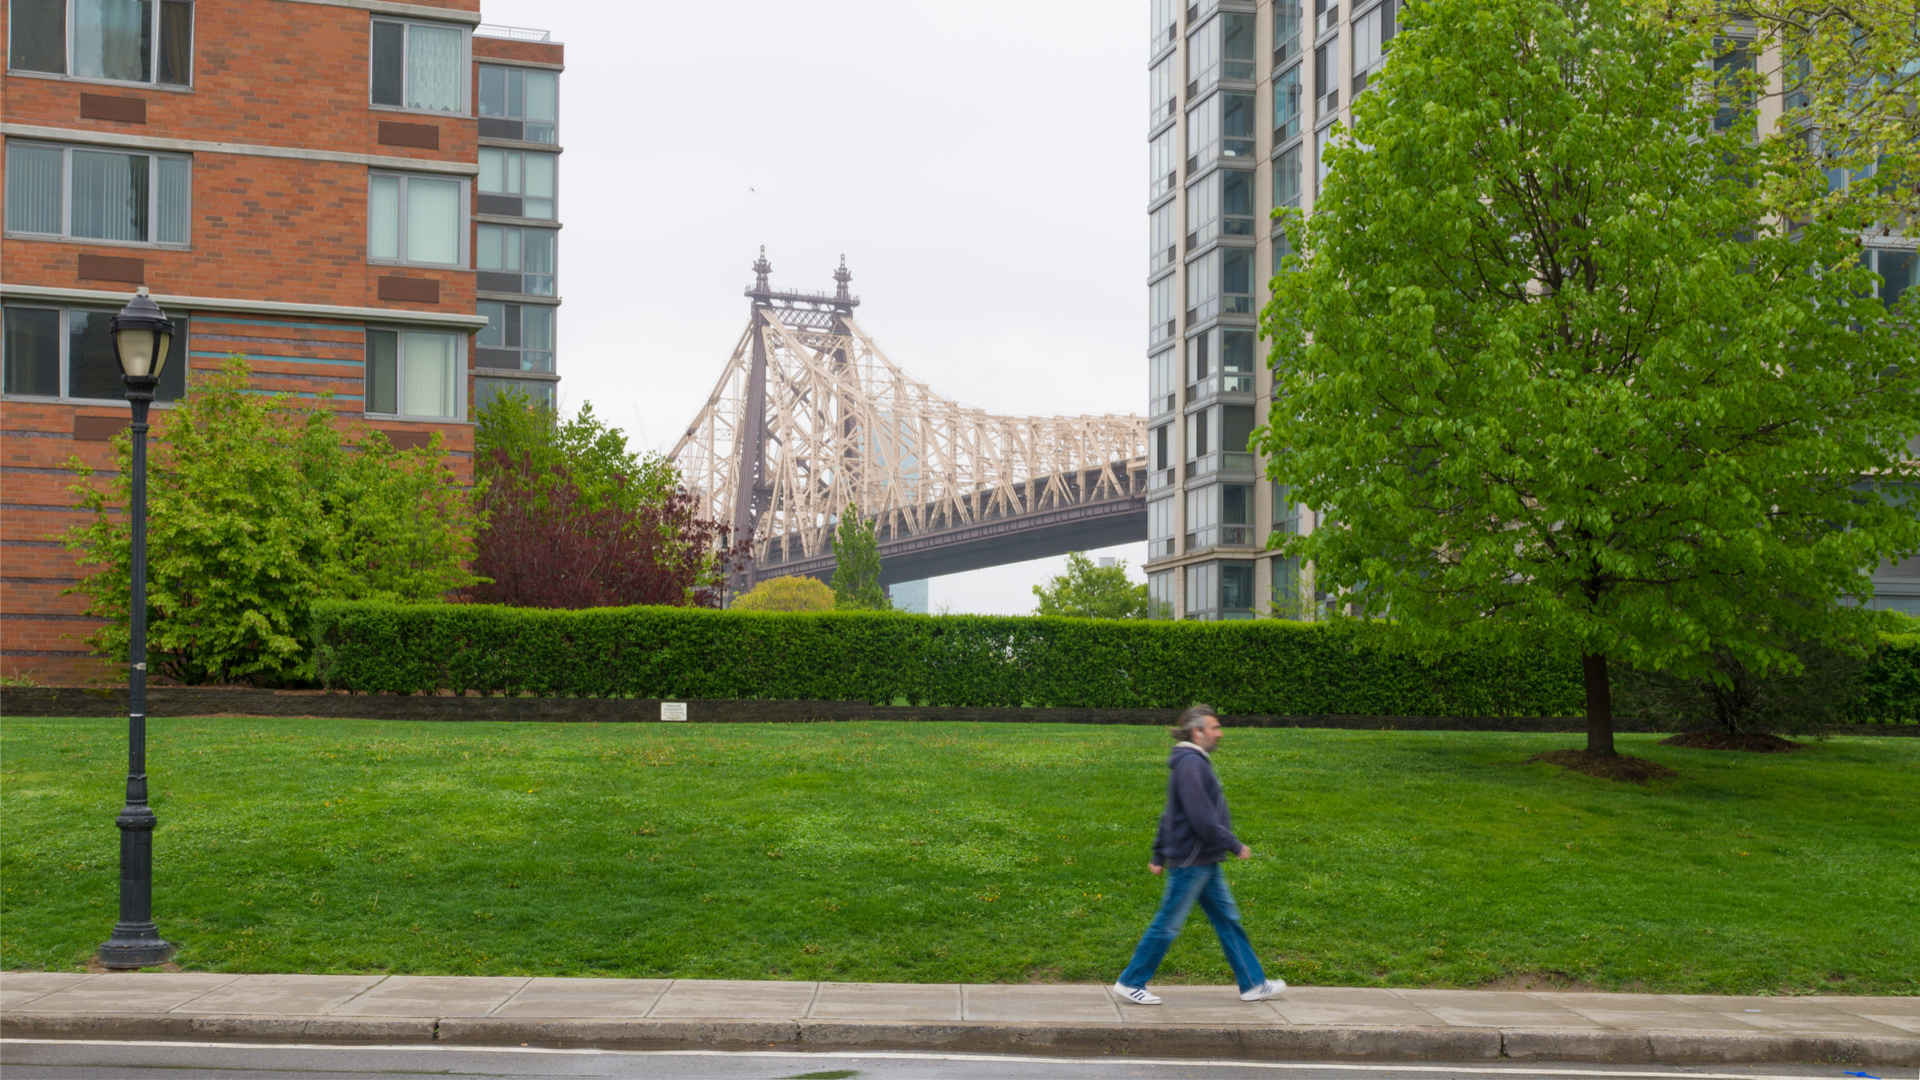 Roosevelt Island street with the Queensboro Bridge in the background